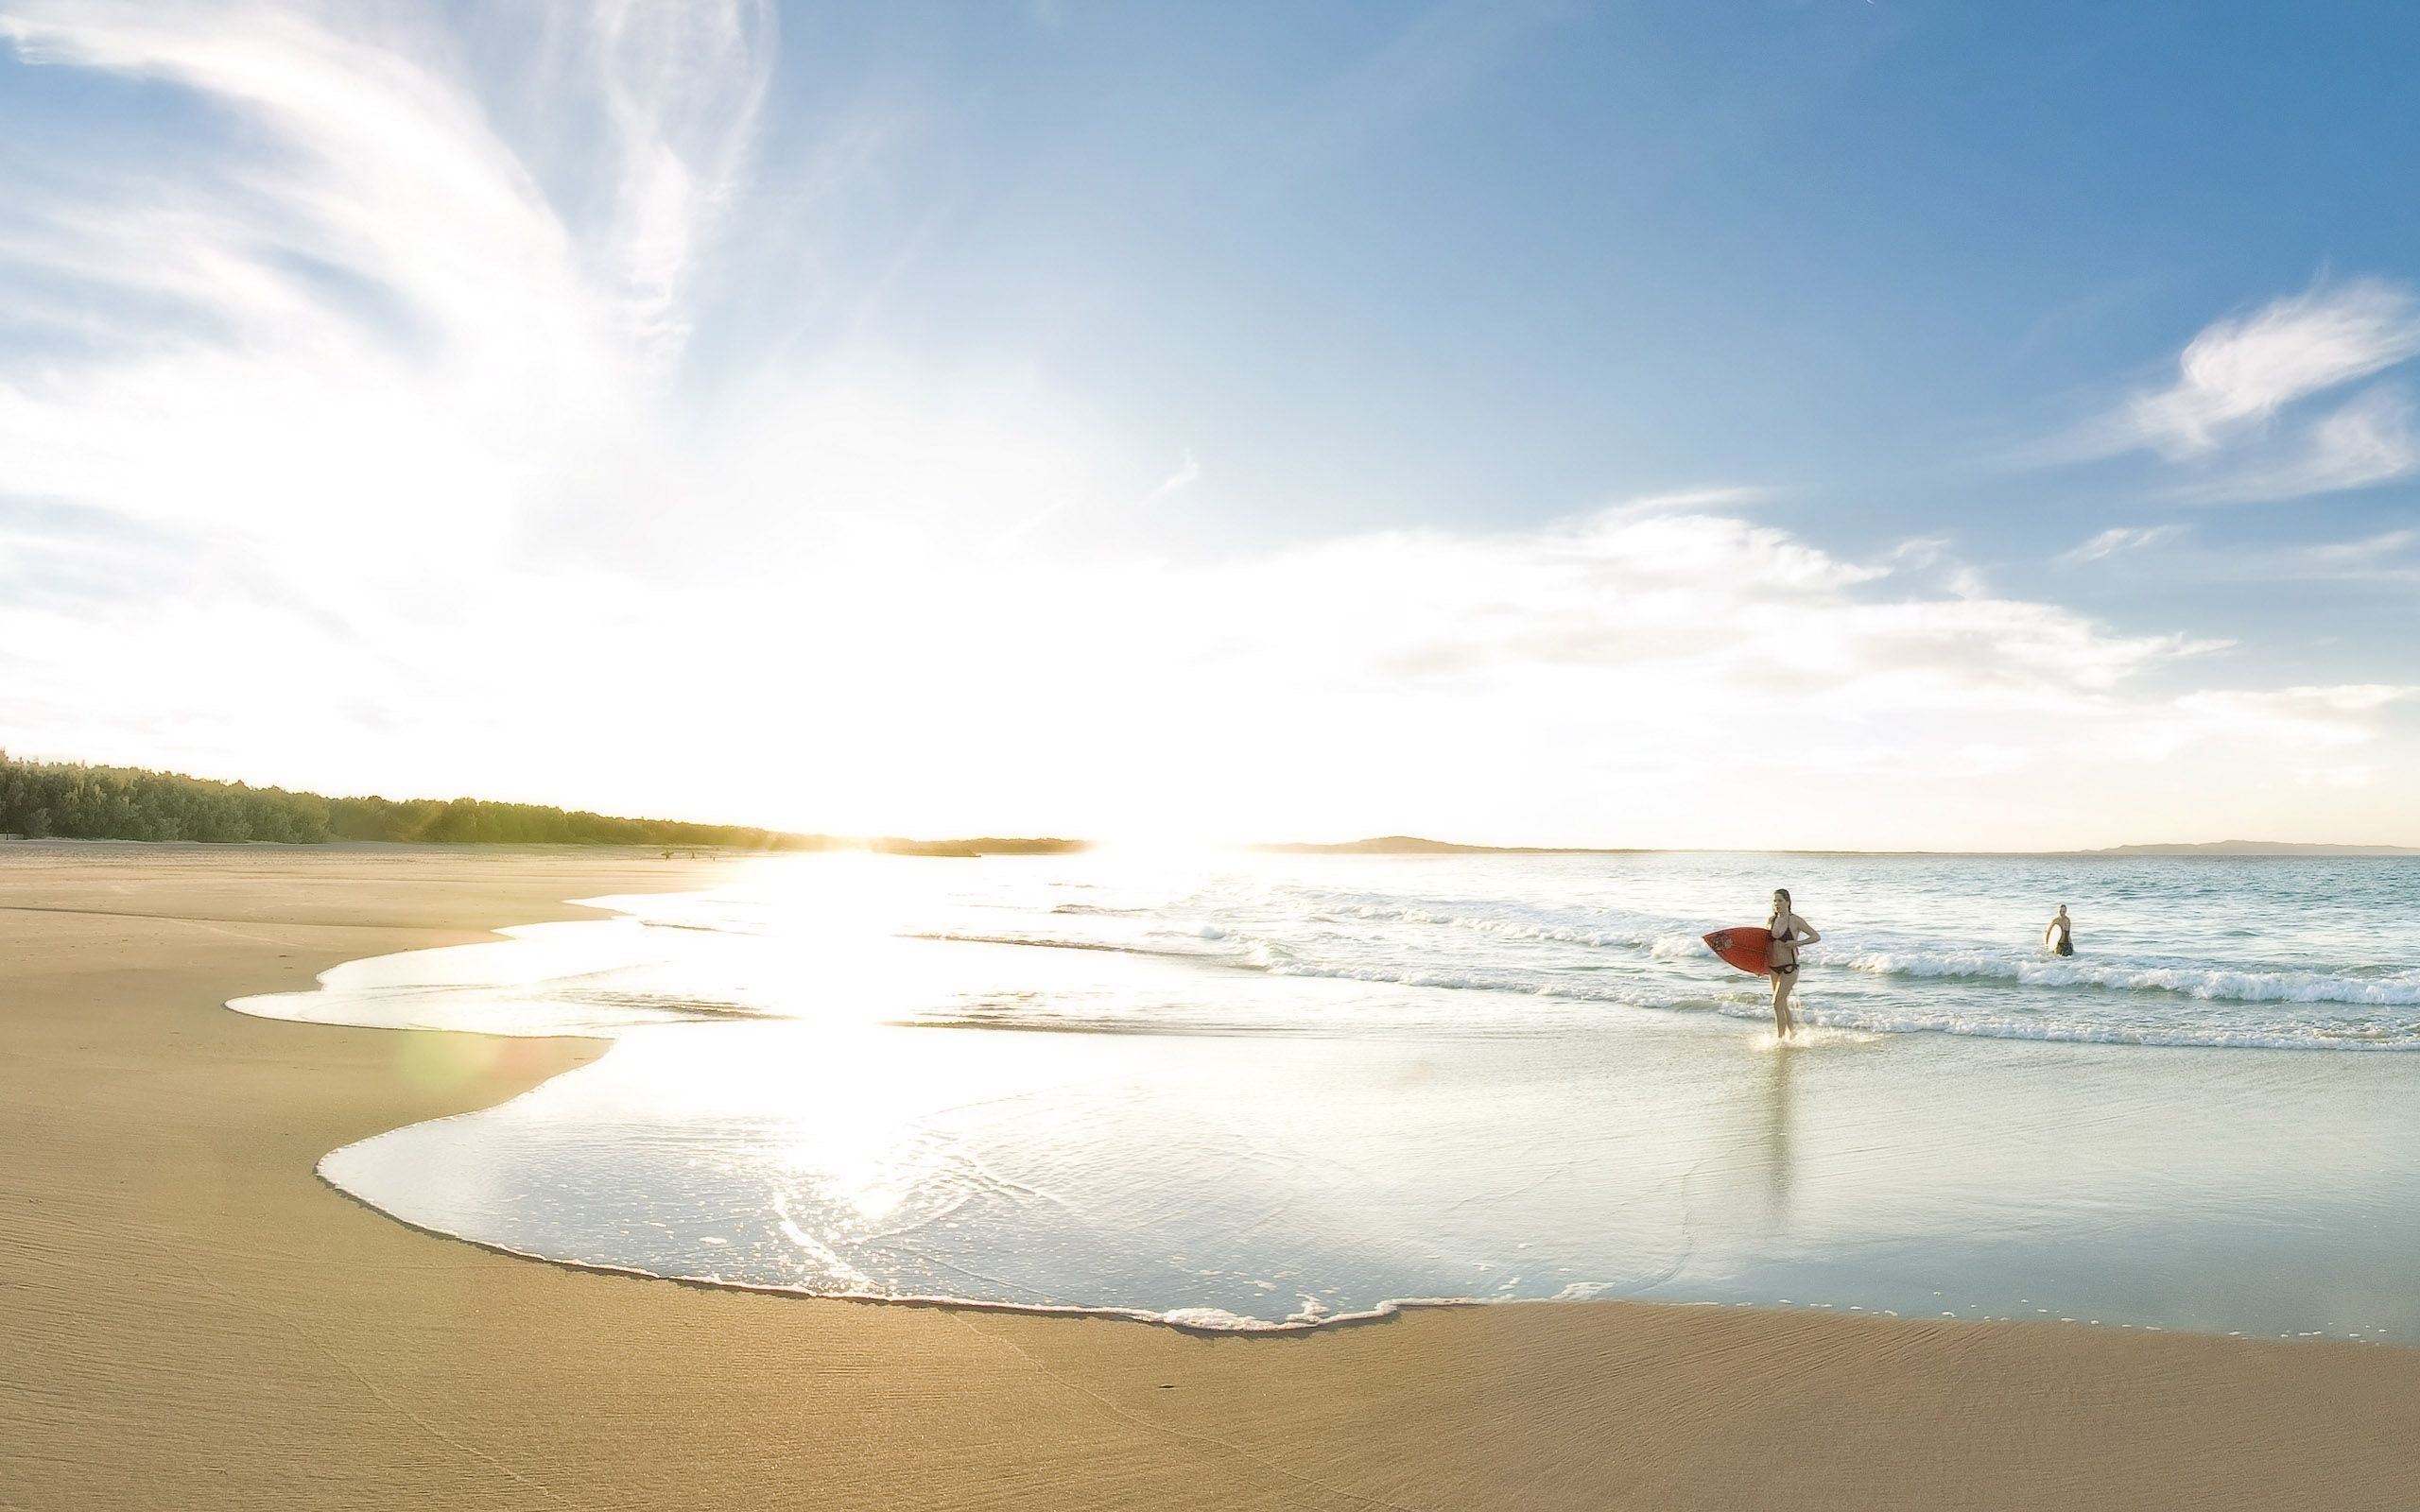 surfing wallpaper for desktop background (linch holiday 2560x1600